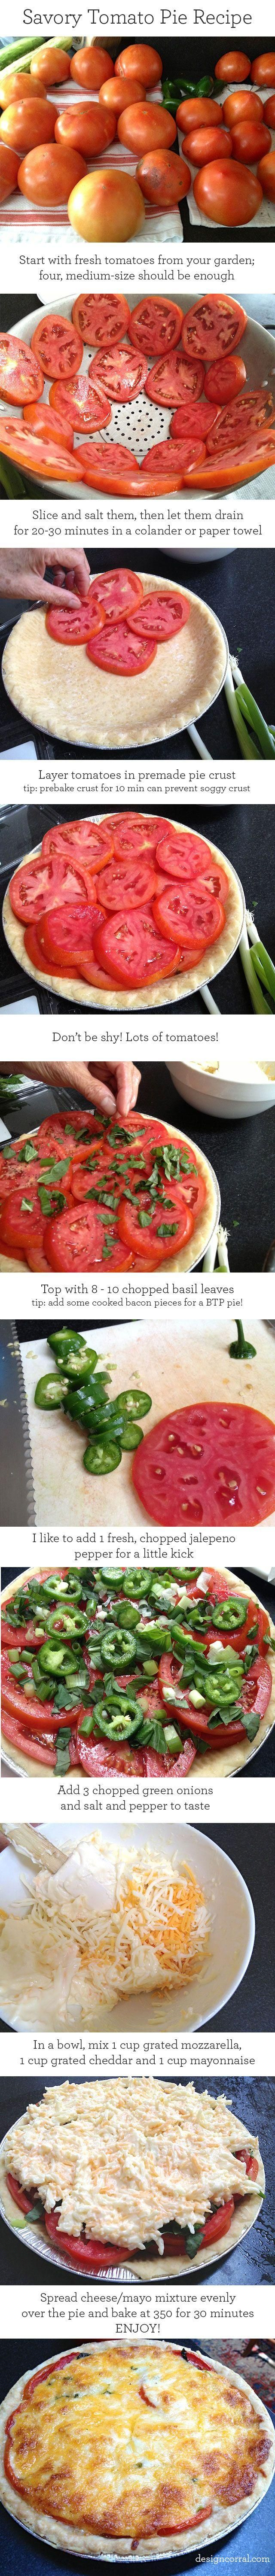 women fashion clothes cheap Savory Tomato Pie Recipe